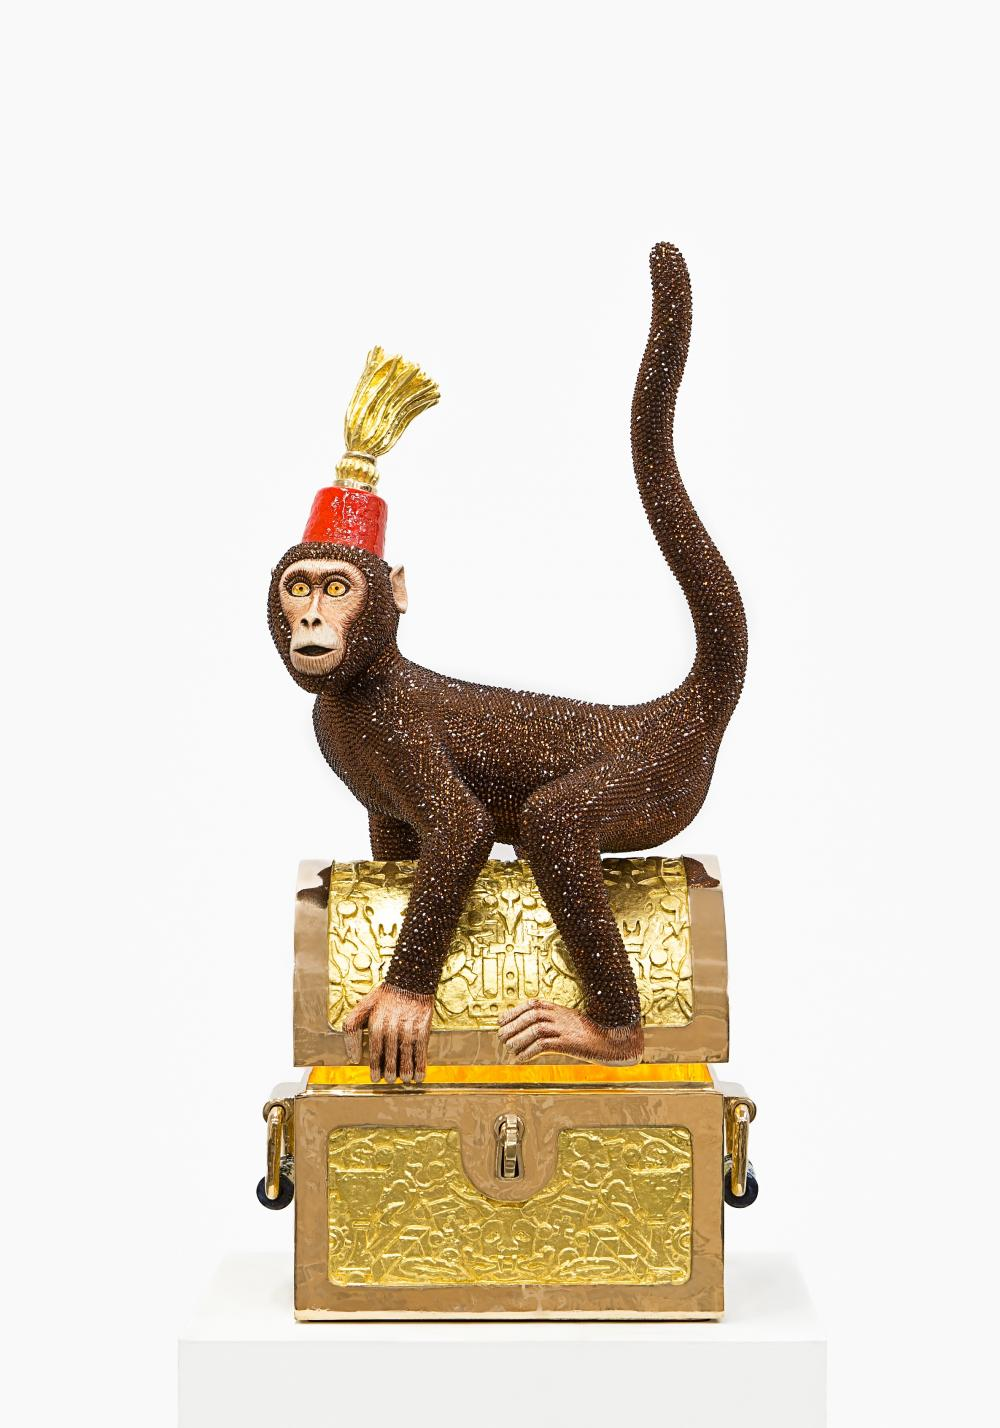 the story behind this crystal covered monkey cnn style